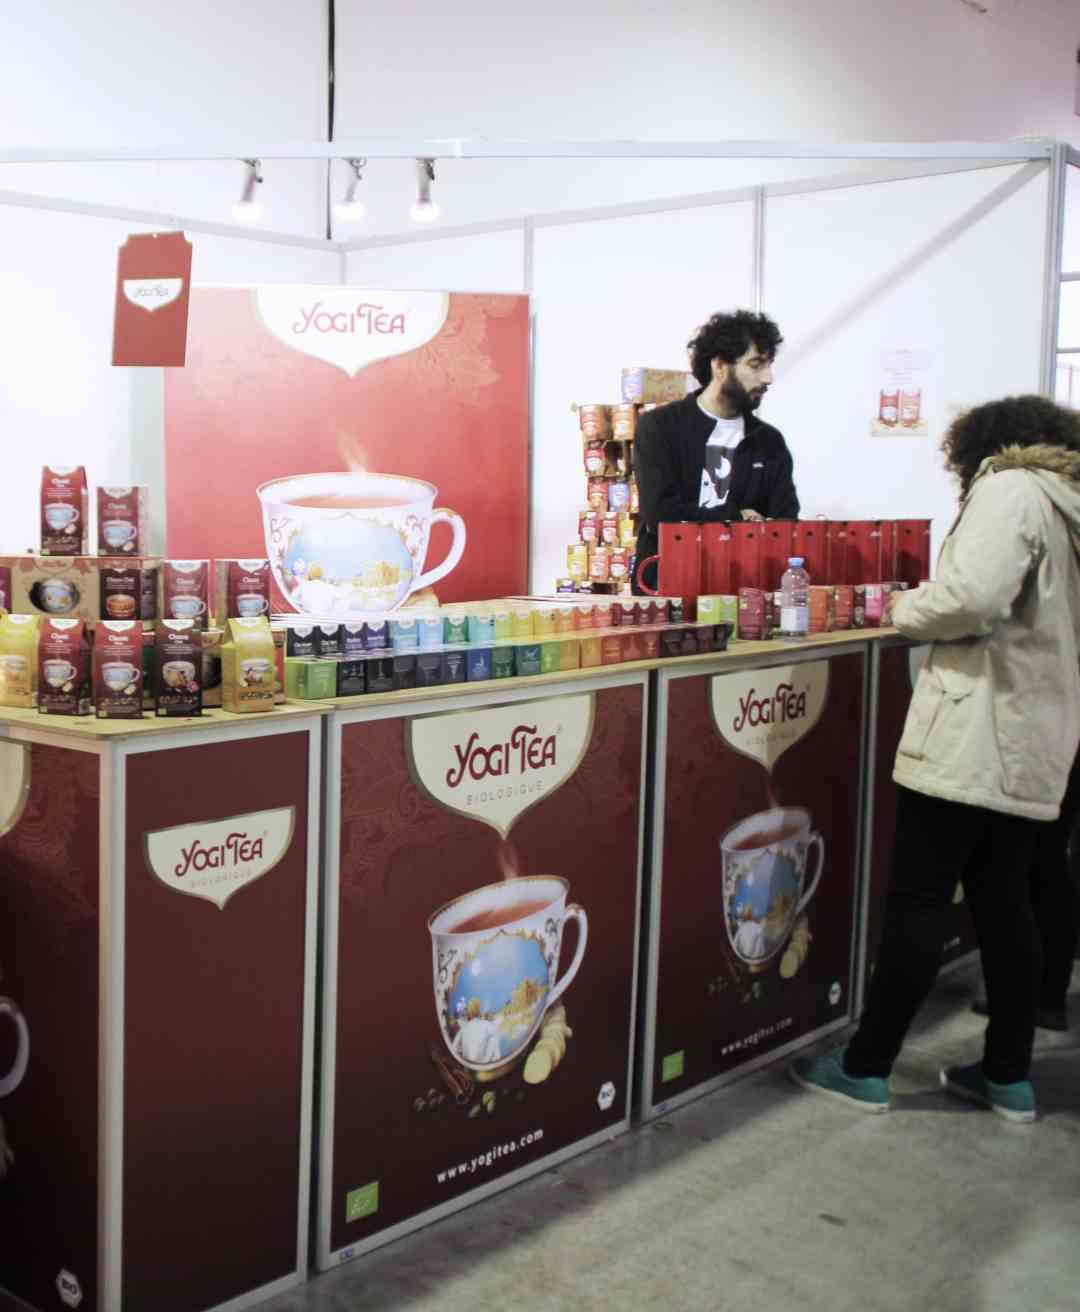 Photo du stand de la marque de thé Yogi Tea #the #tea